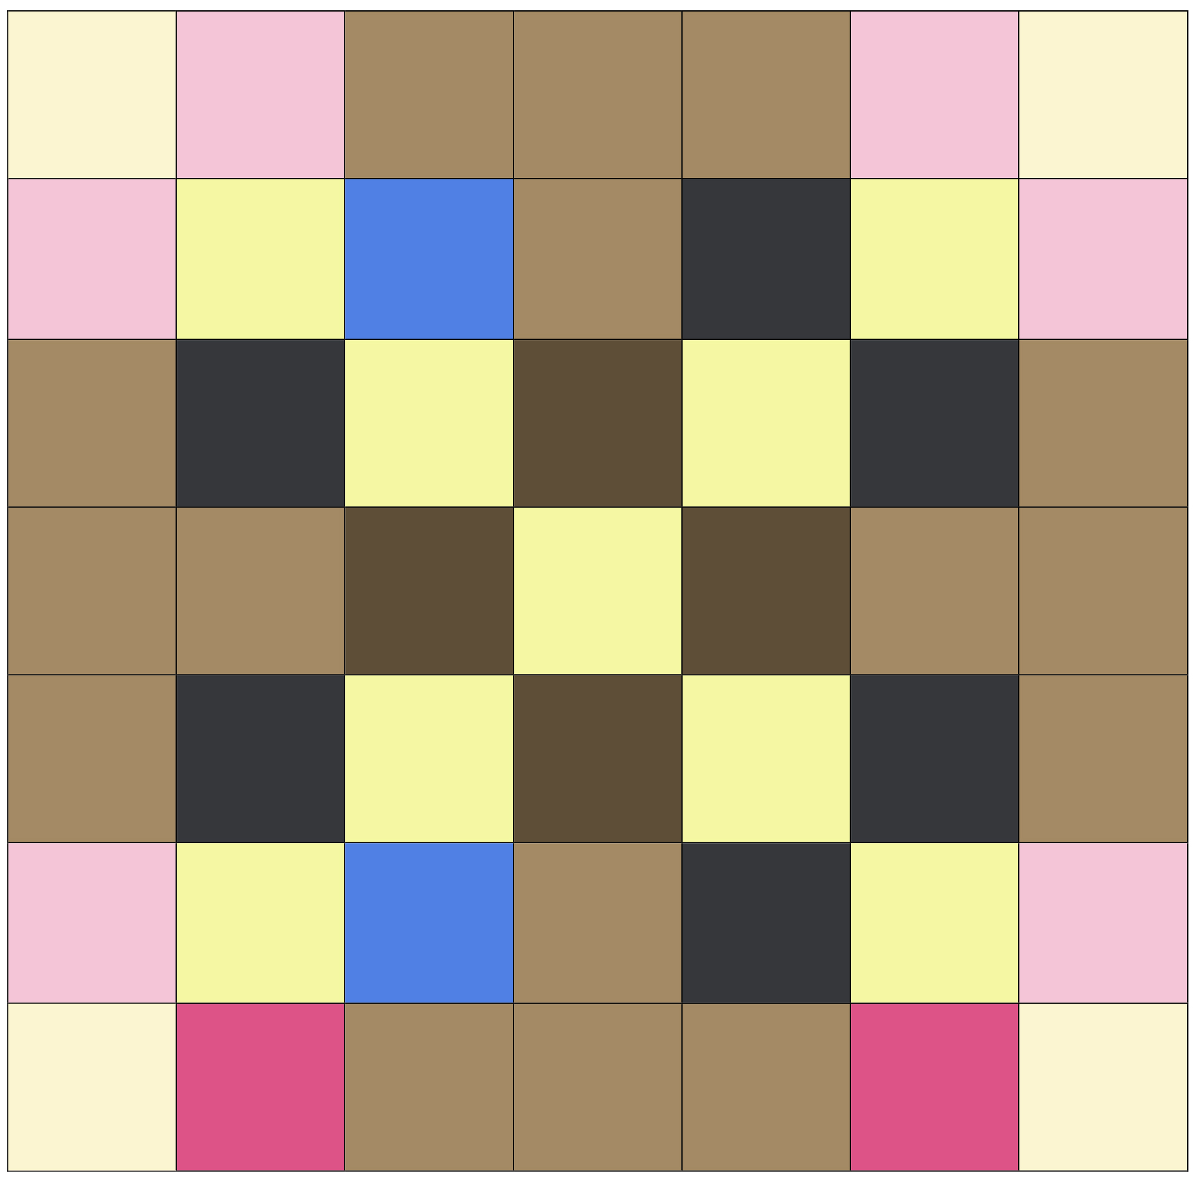 A rendering of one of the complex squares in the Dutton Quilt